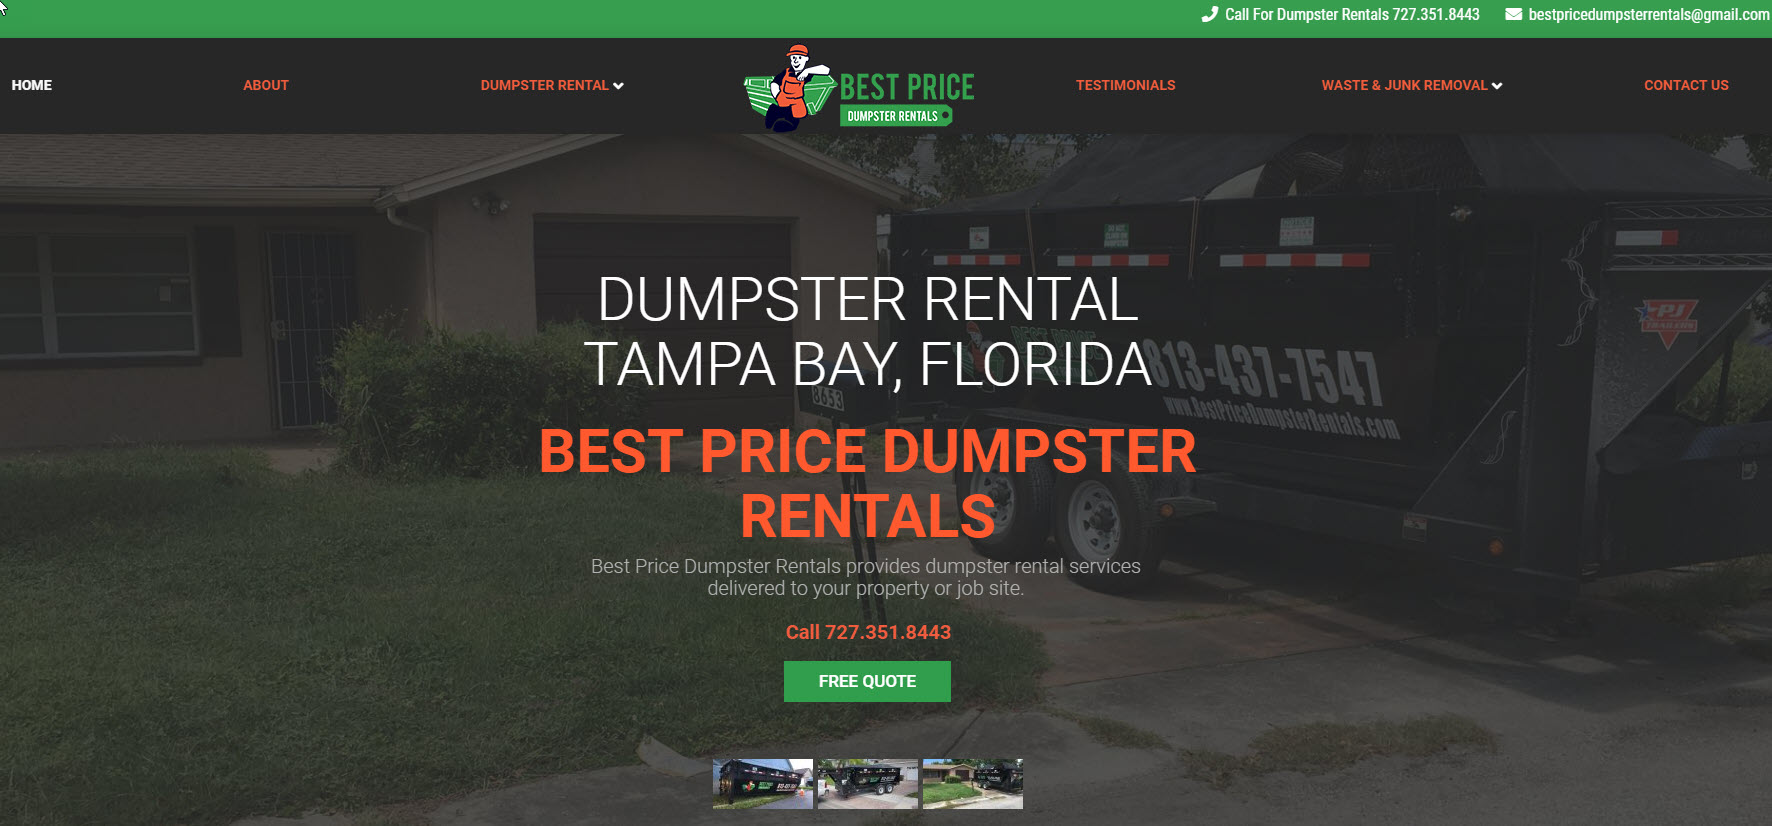 best price dumpster rentals